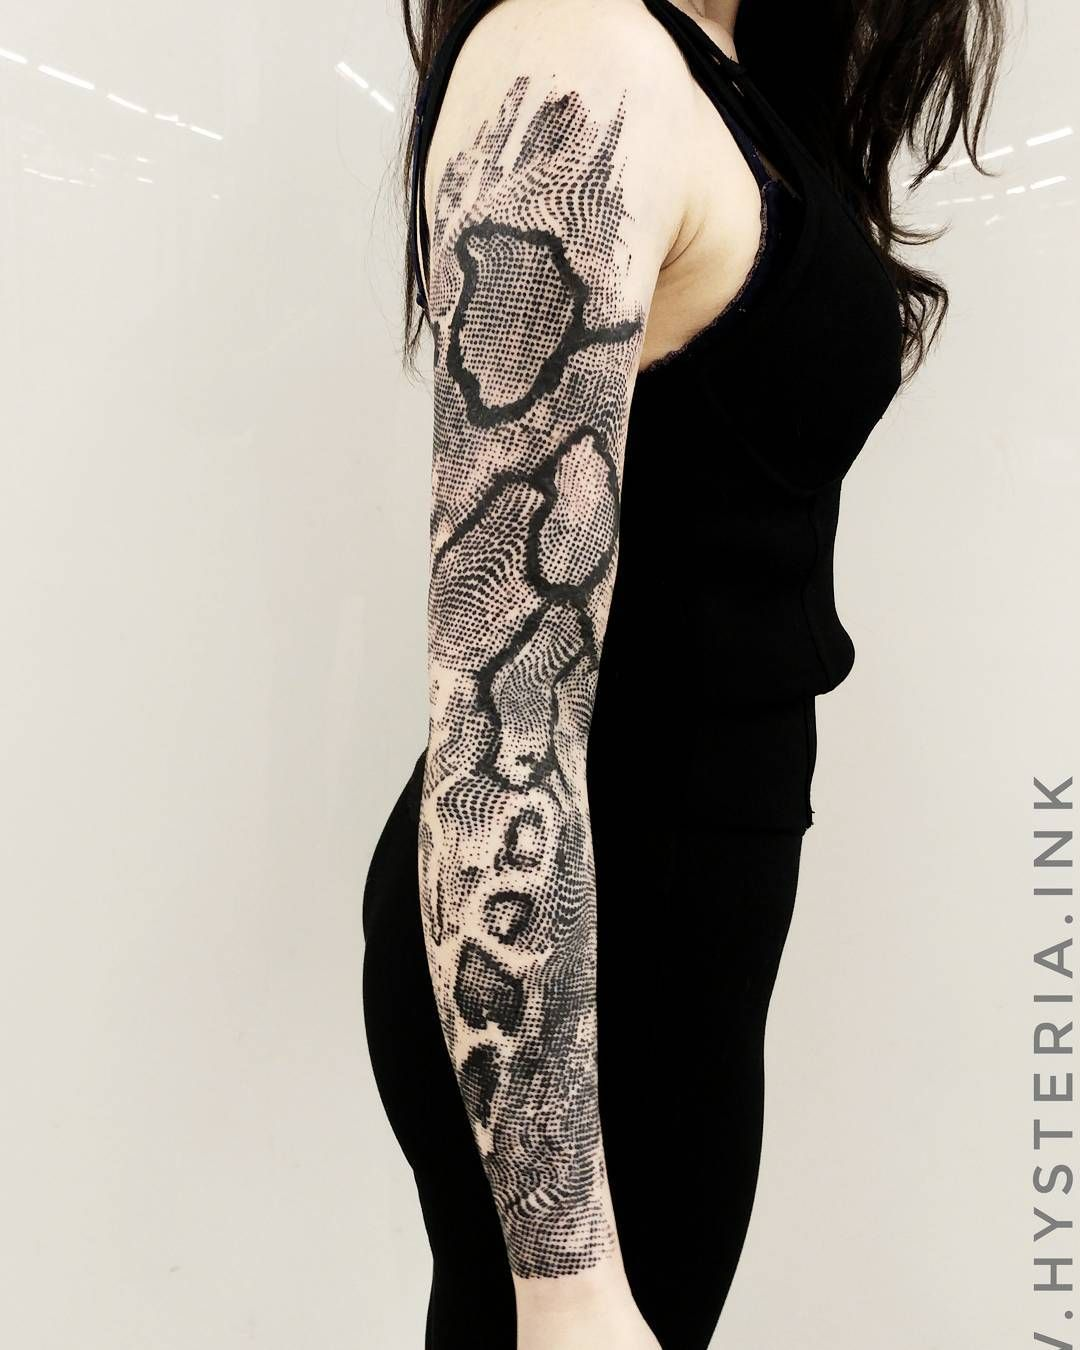 729819347 Pin Juno Morrow Tattoos Form & Technique Snake Skin Pattern Tribal